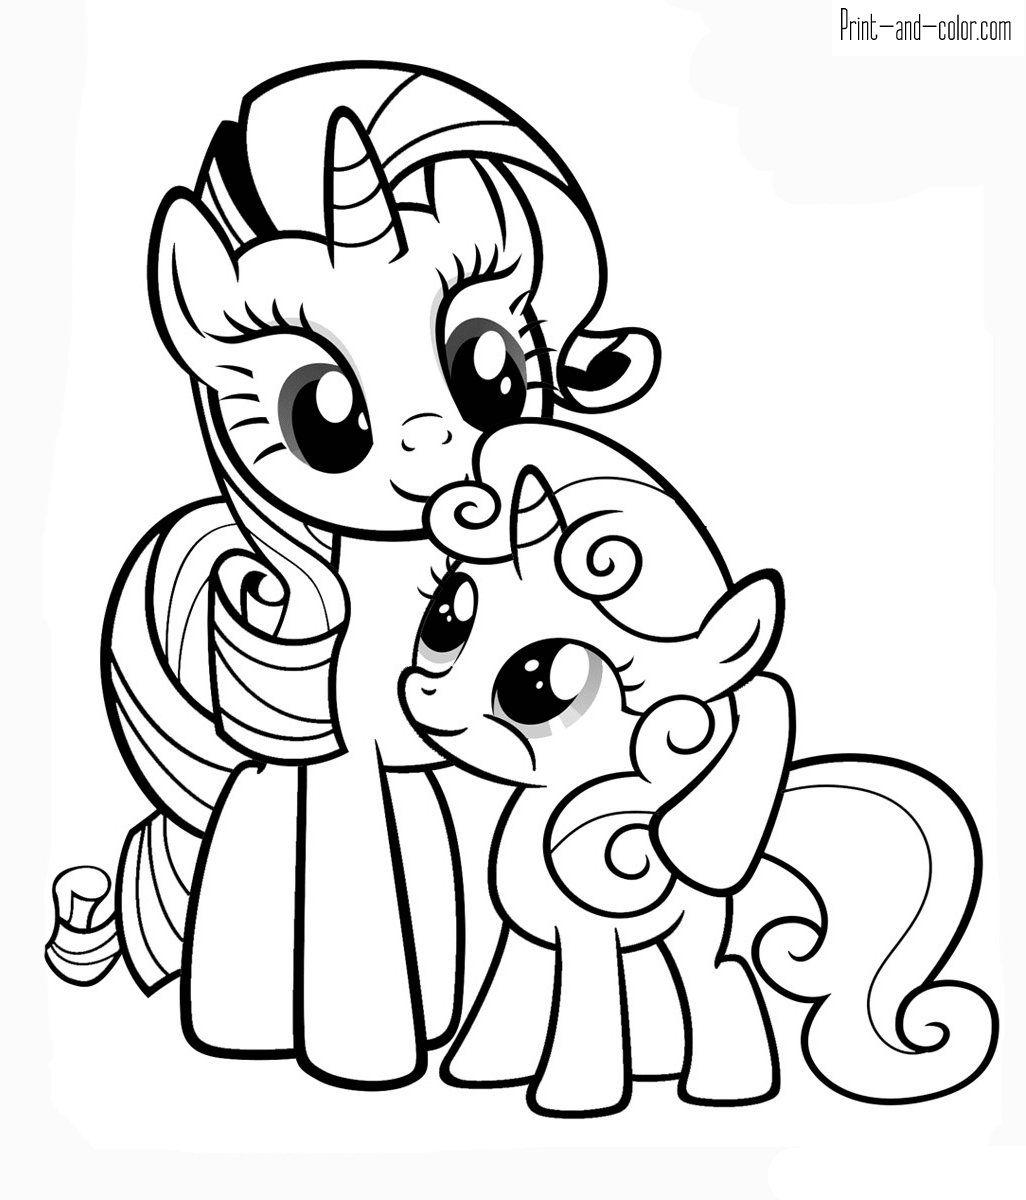 mlp coloring page free printable my little pony coloring pages for kids page coloring mlp